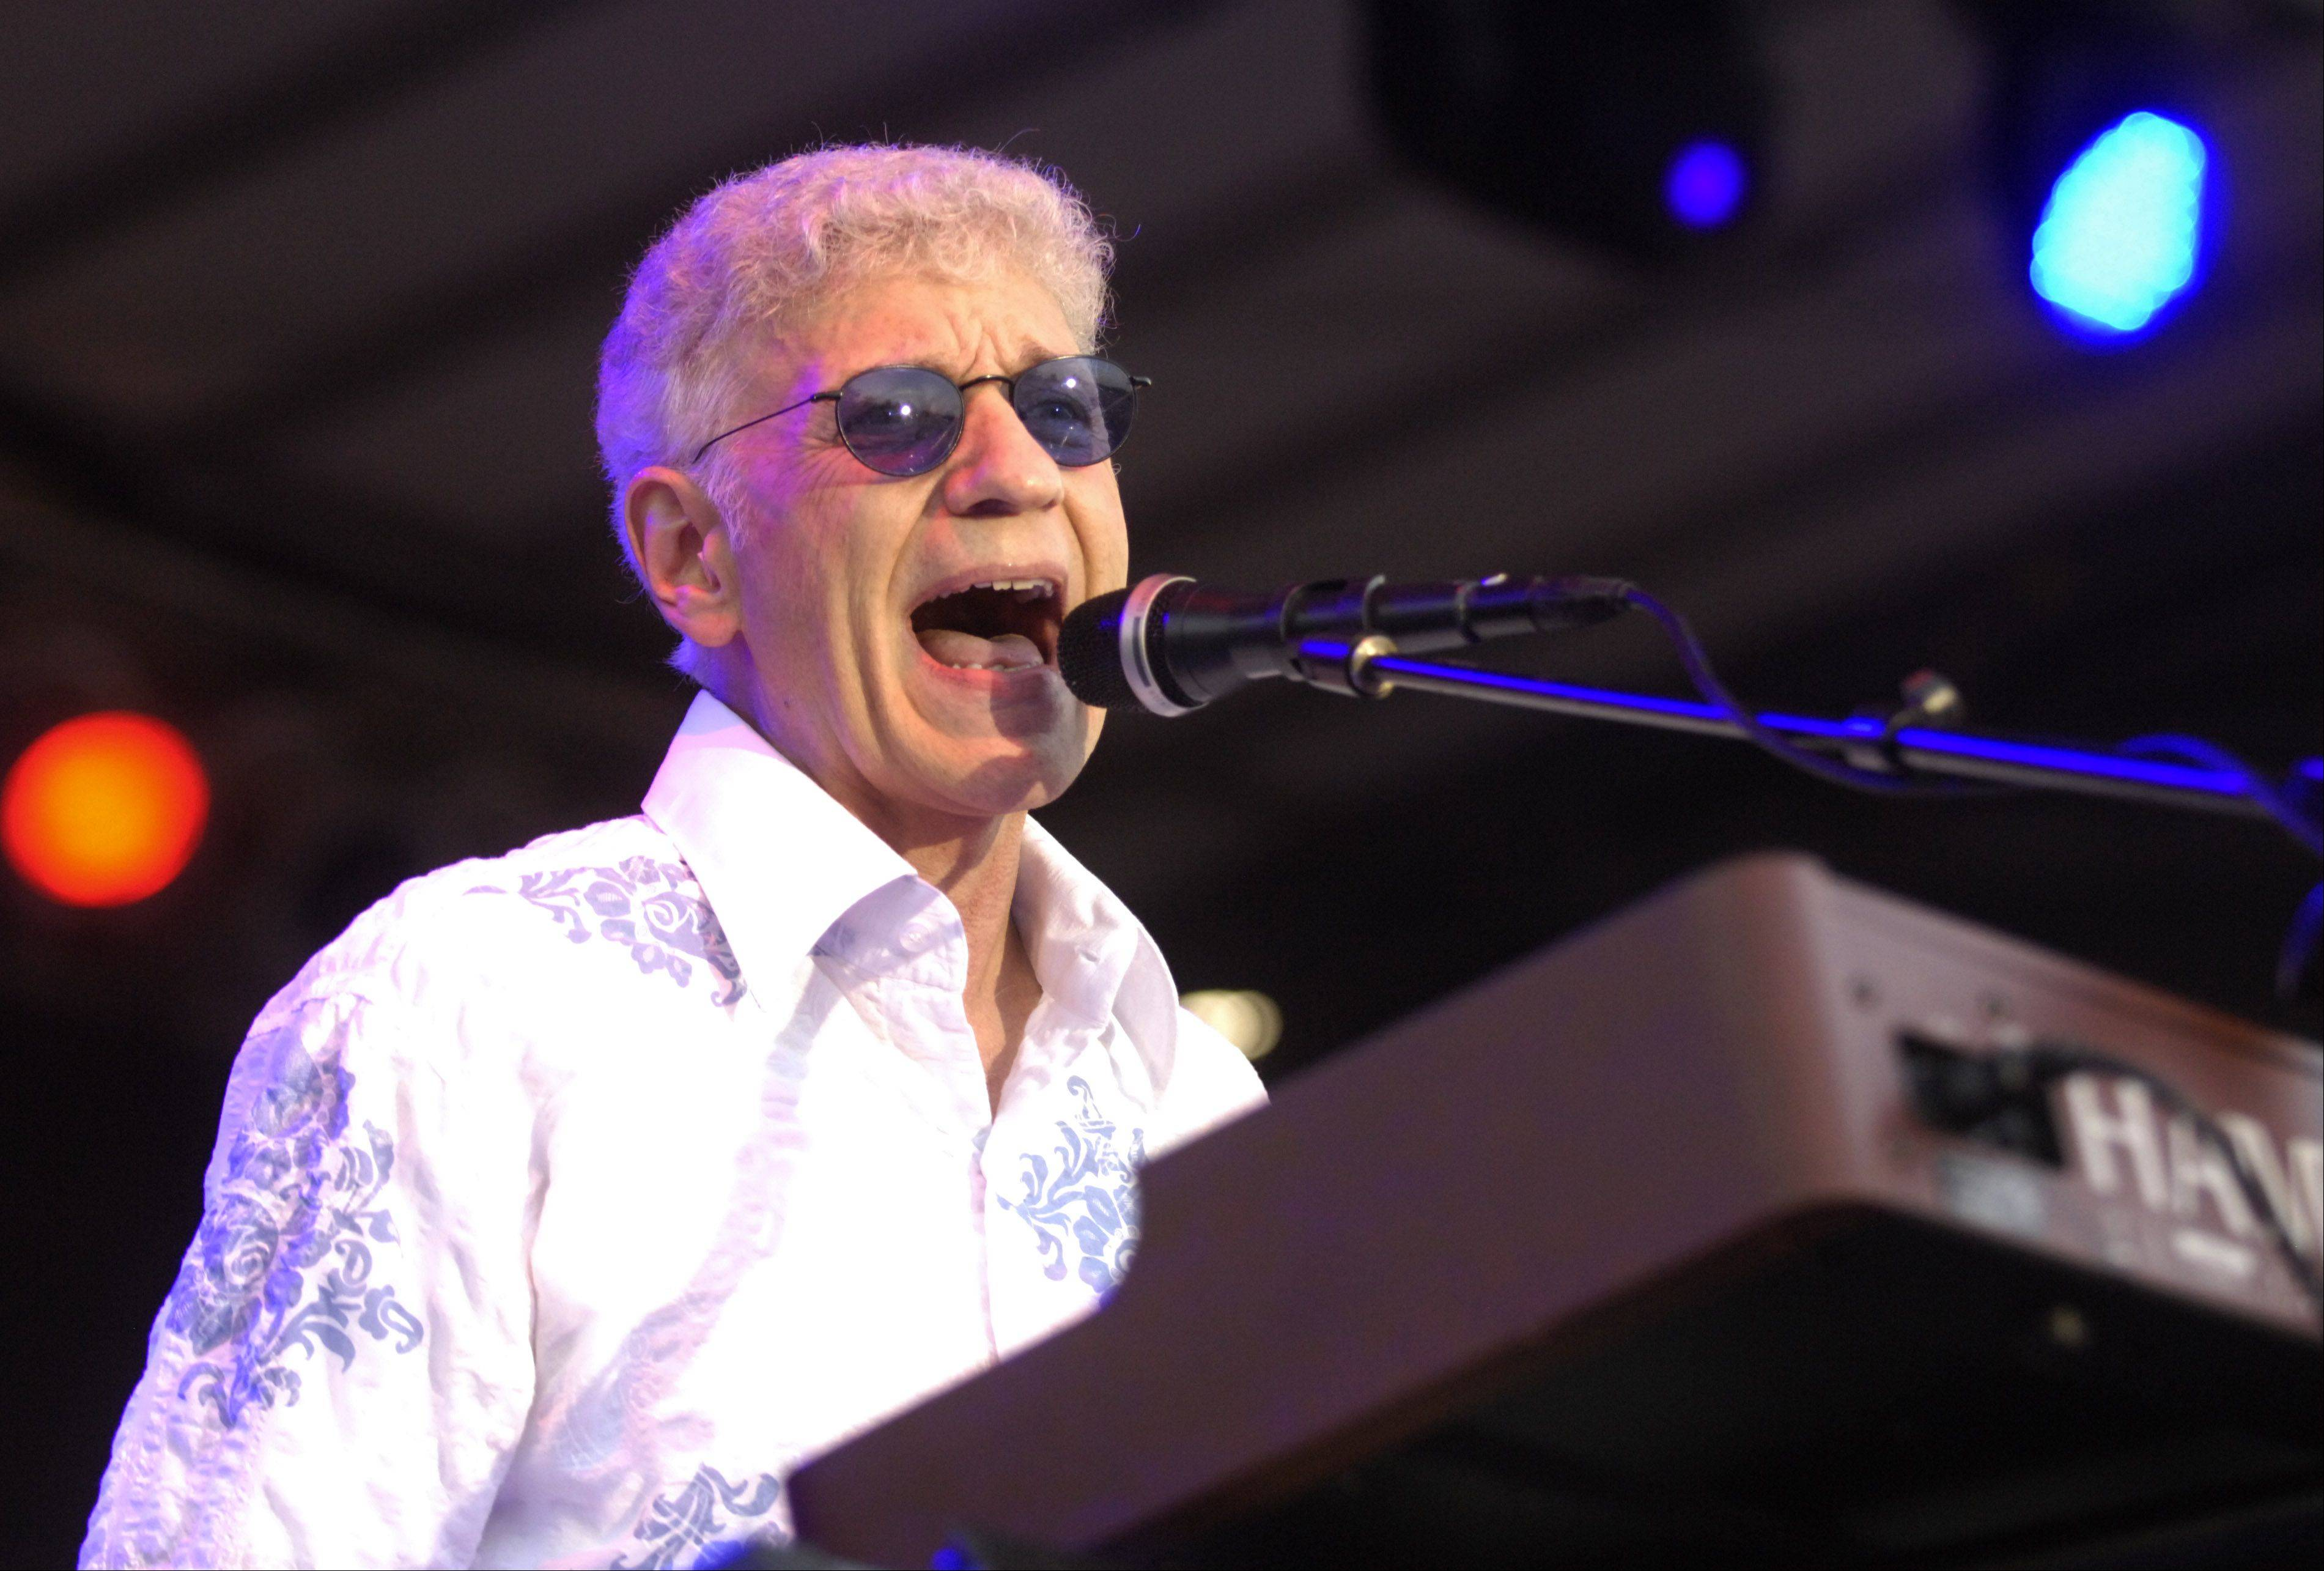 Dennis DeYoung headlines the Arcada Theatre in St. Charles Saturday, April 27.